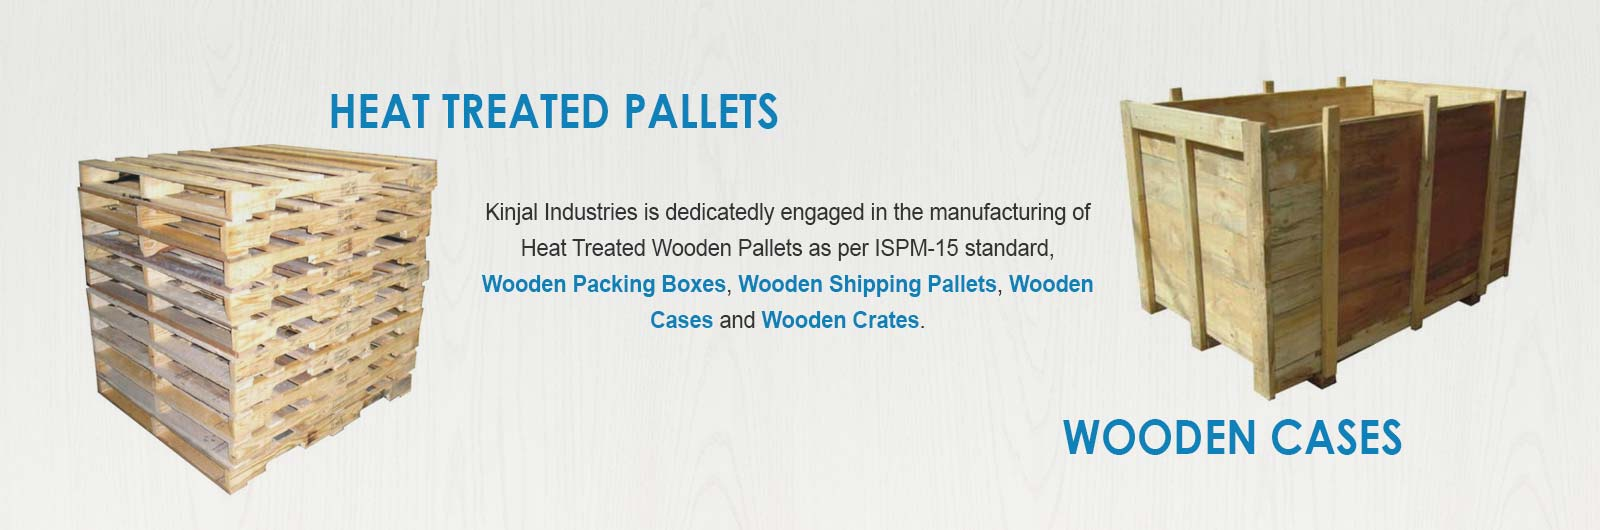 Heat Treated Pallets, Wooden Cases Manufacturers in Surendranagar